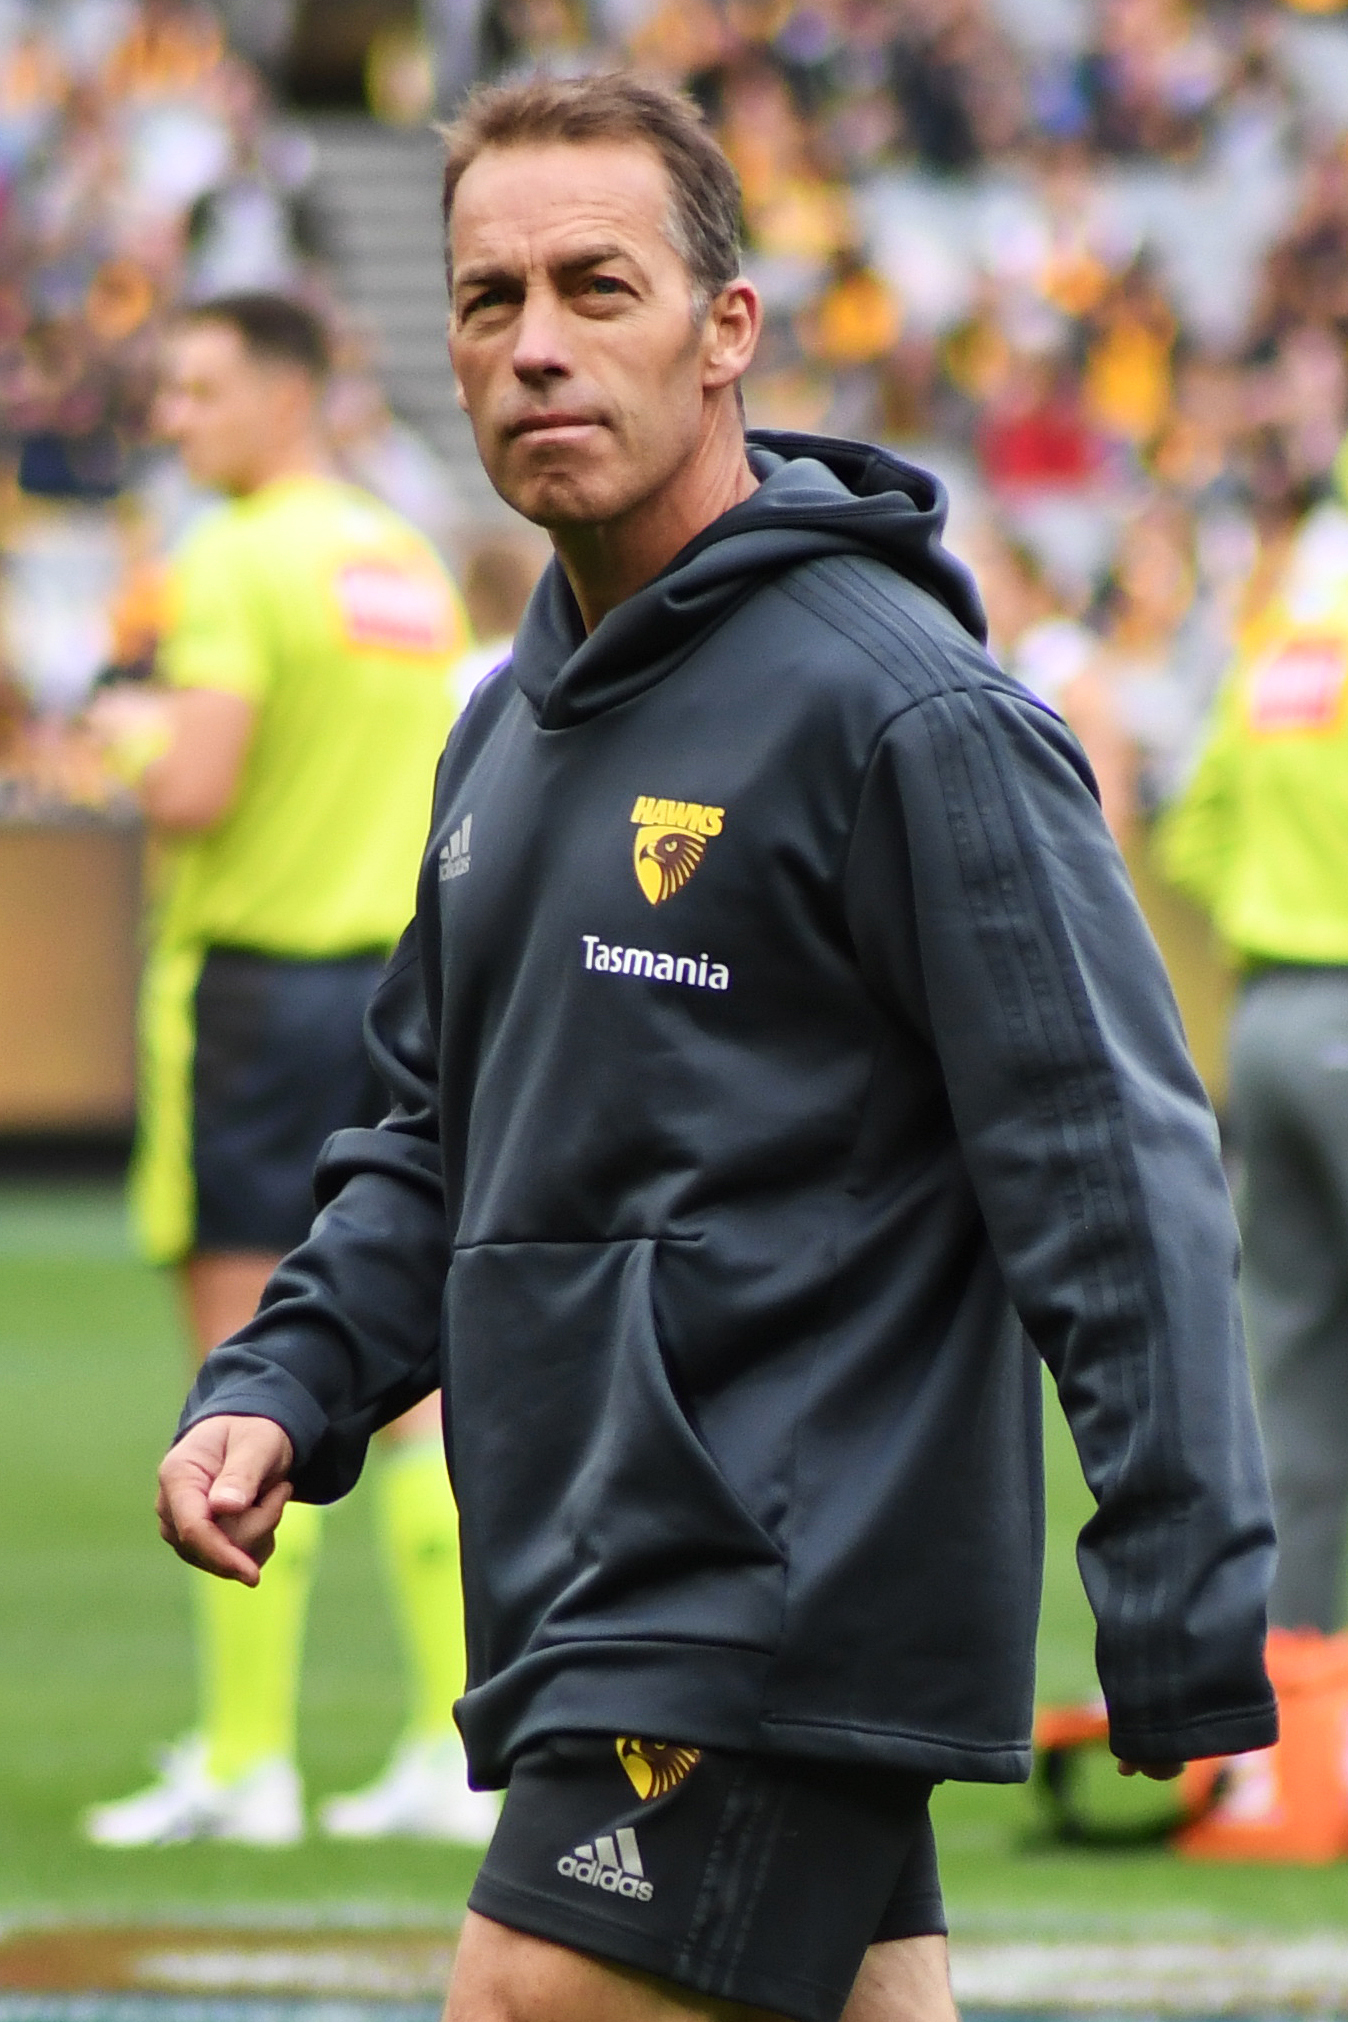 Alastair Clarkson Wikipedia